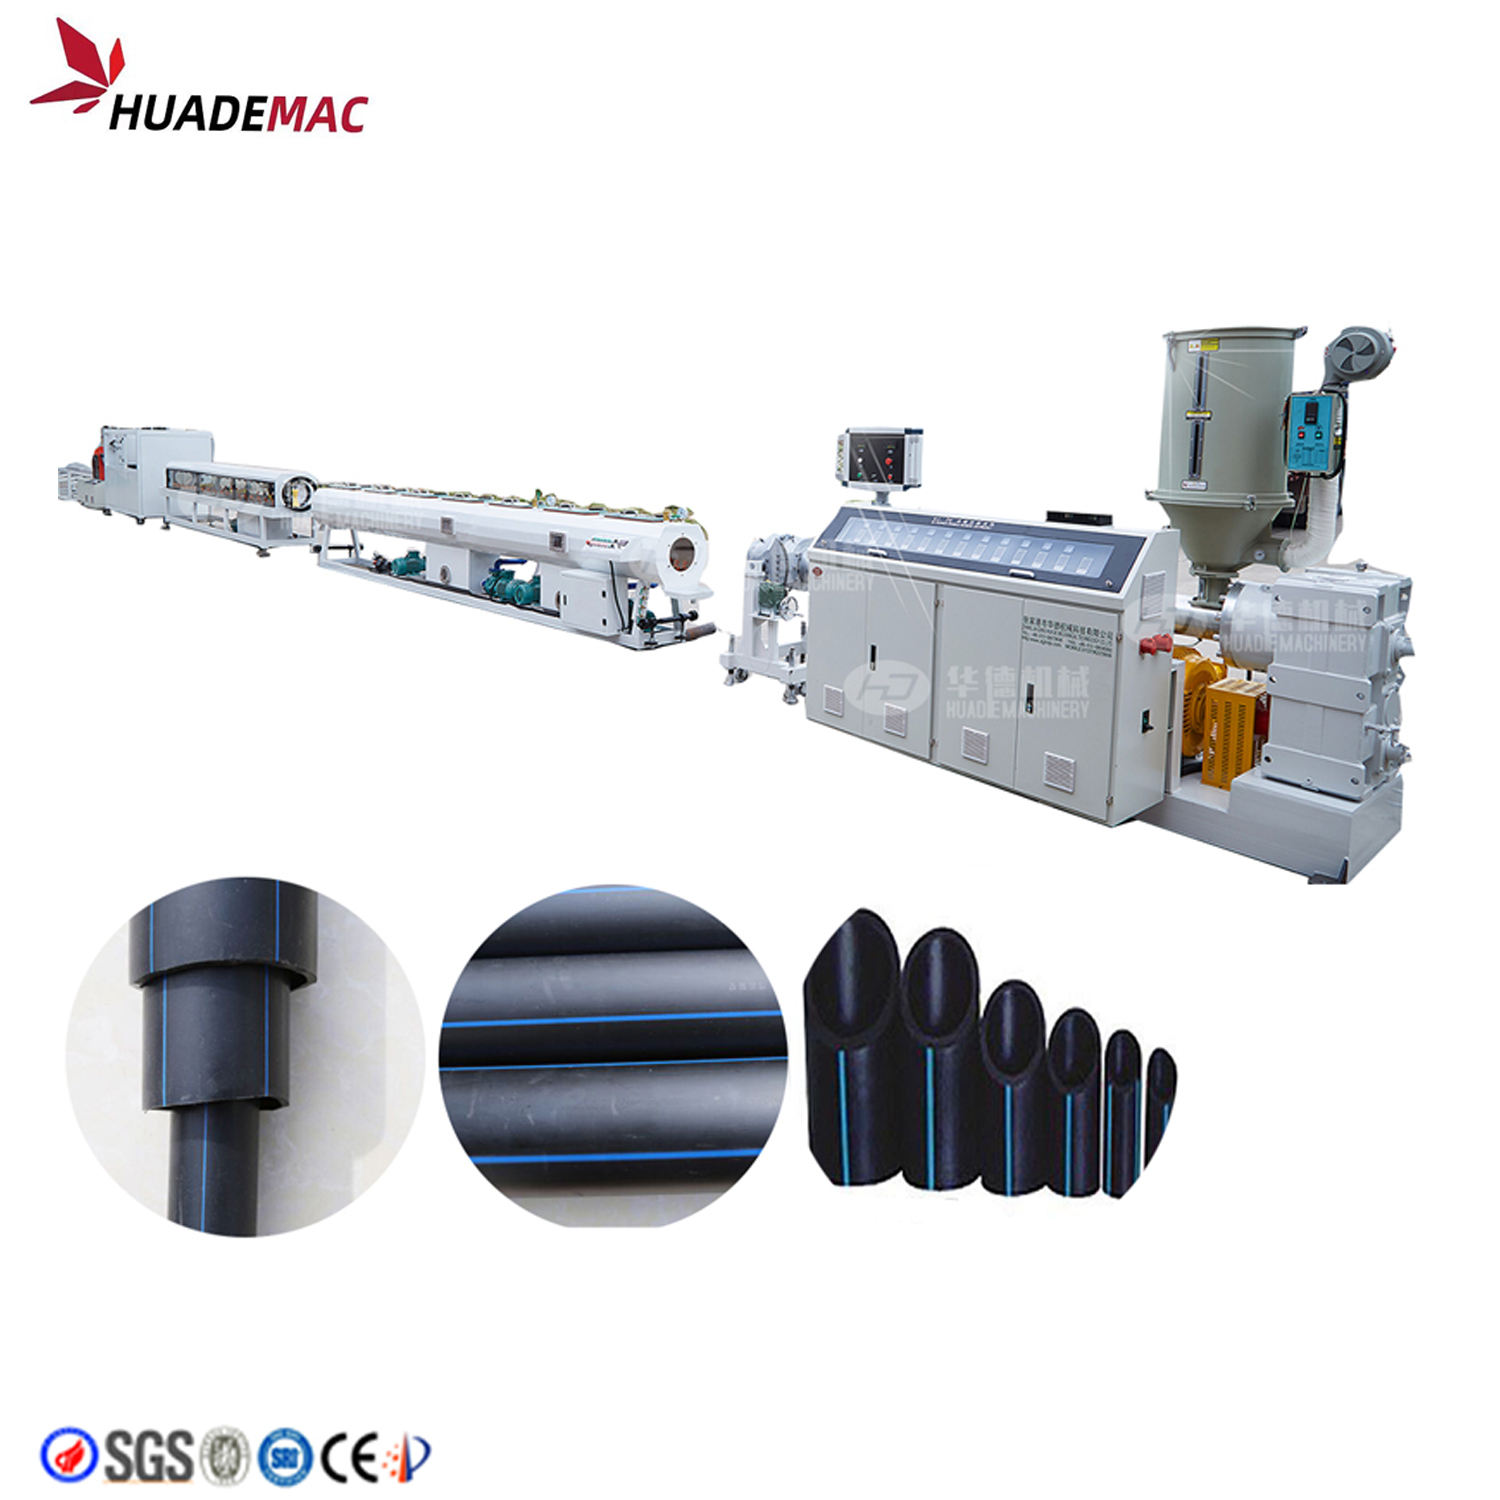 Hdpe pe Pipe Extrusion Machine Producing Plastic Pipes Machines